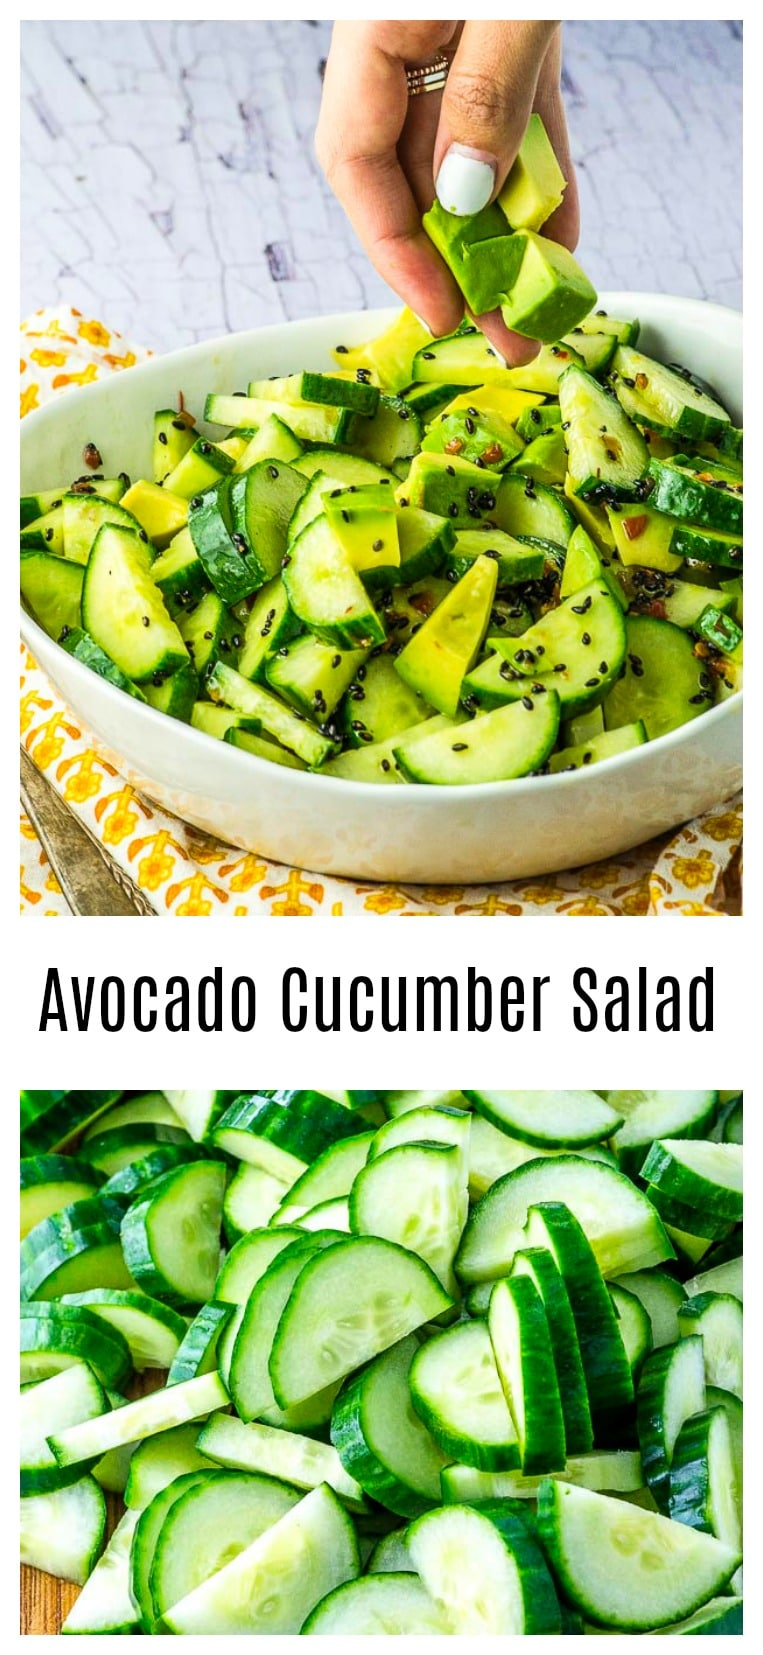 This cucumber salad is cool, refreshing, and easy to prepare, making it a great side for barbecues, sandwiches, and outdoor picnic meals. #salad #cucumbers #Side #vegan #avocado